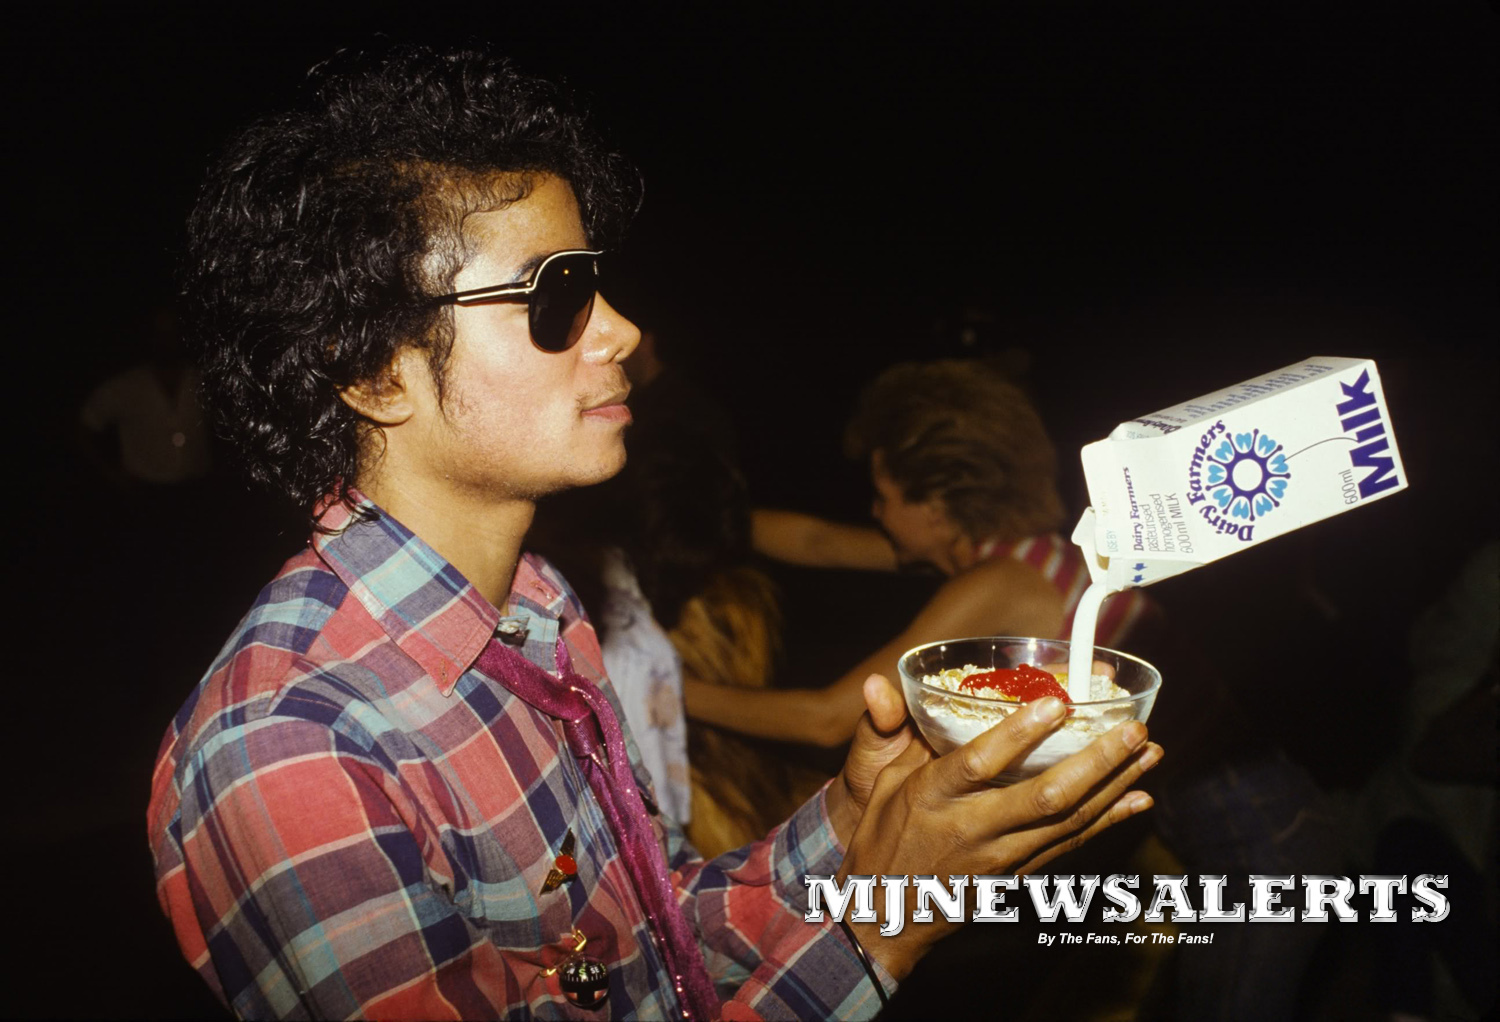 On the set of captain Eo HQ